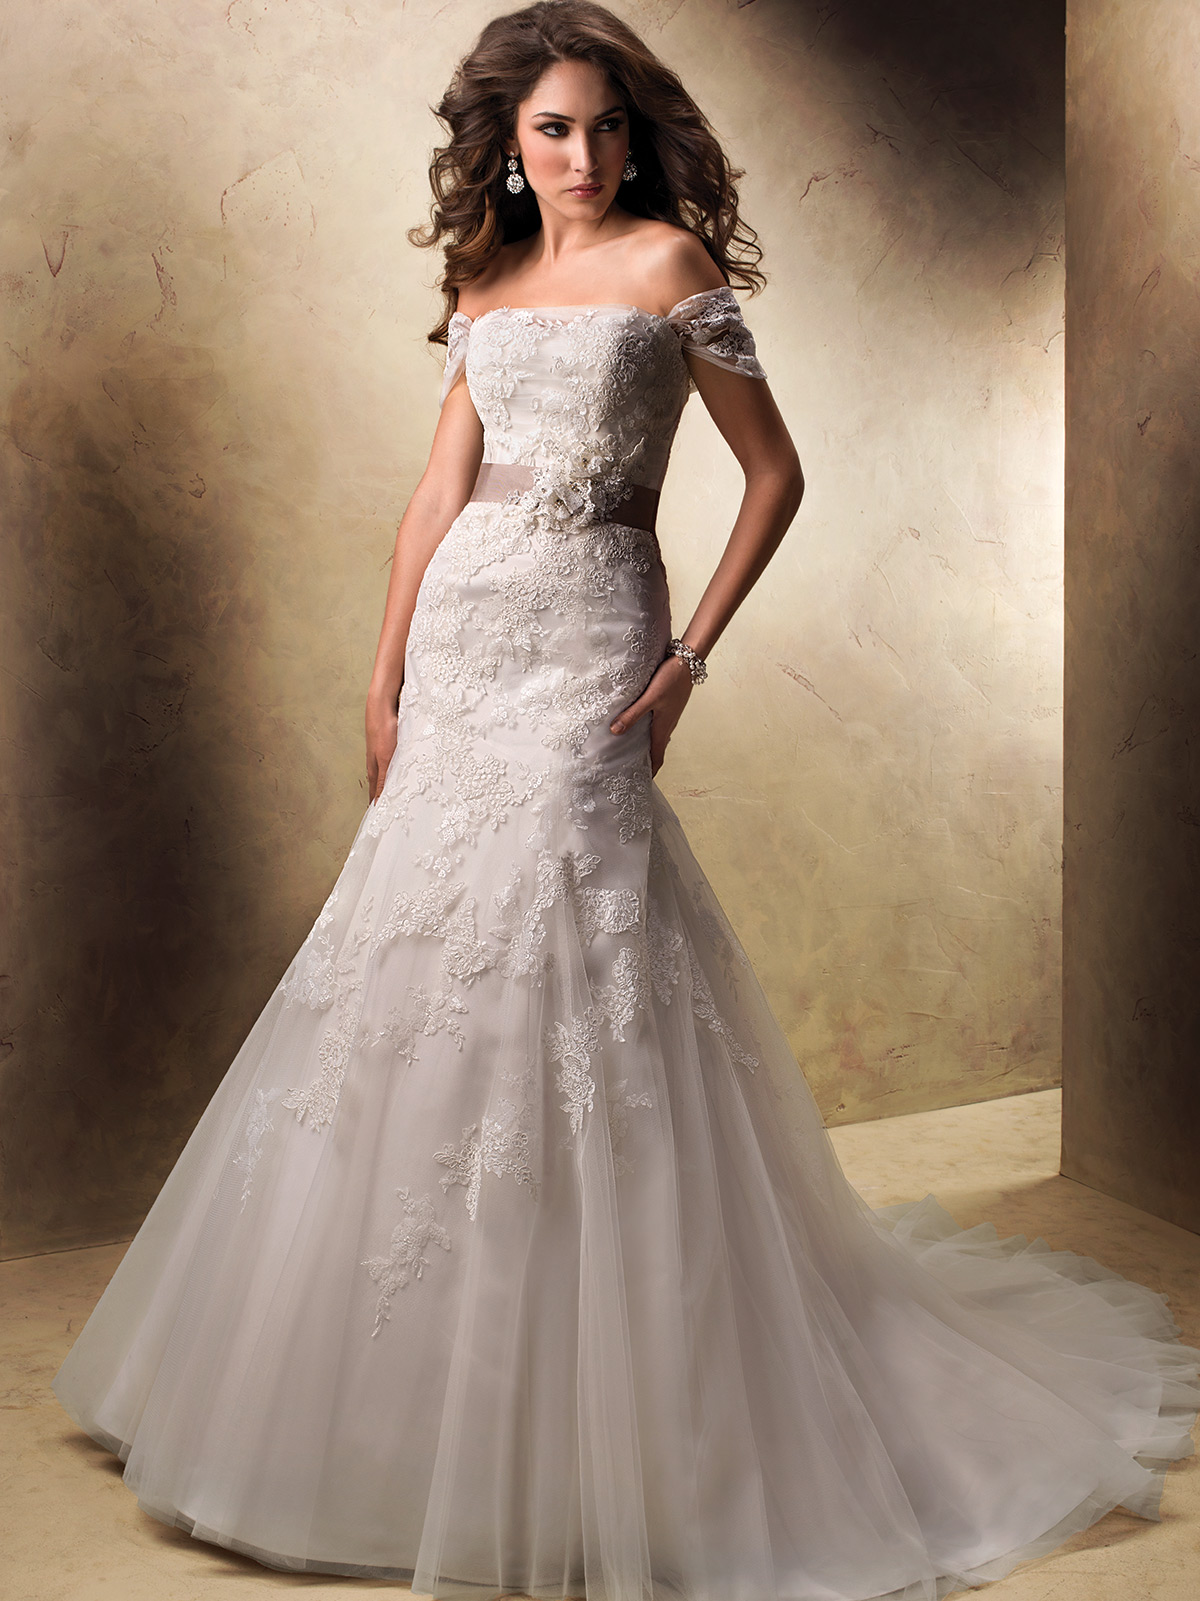 lace cap sleeve wedding dress maggie sottero detachable wedding dress Maggie Sottero Lace Wedding Dress 93